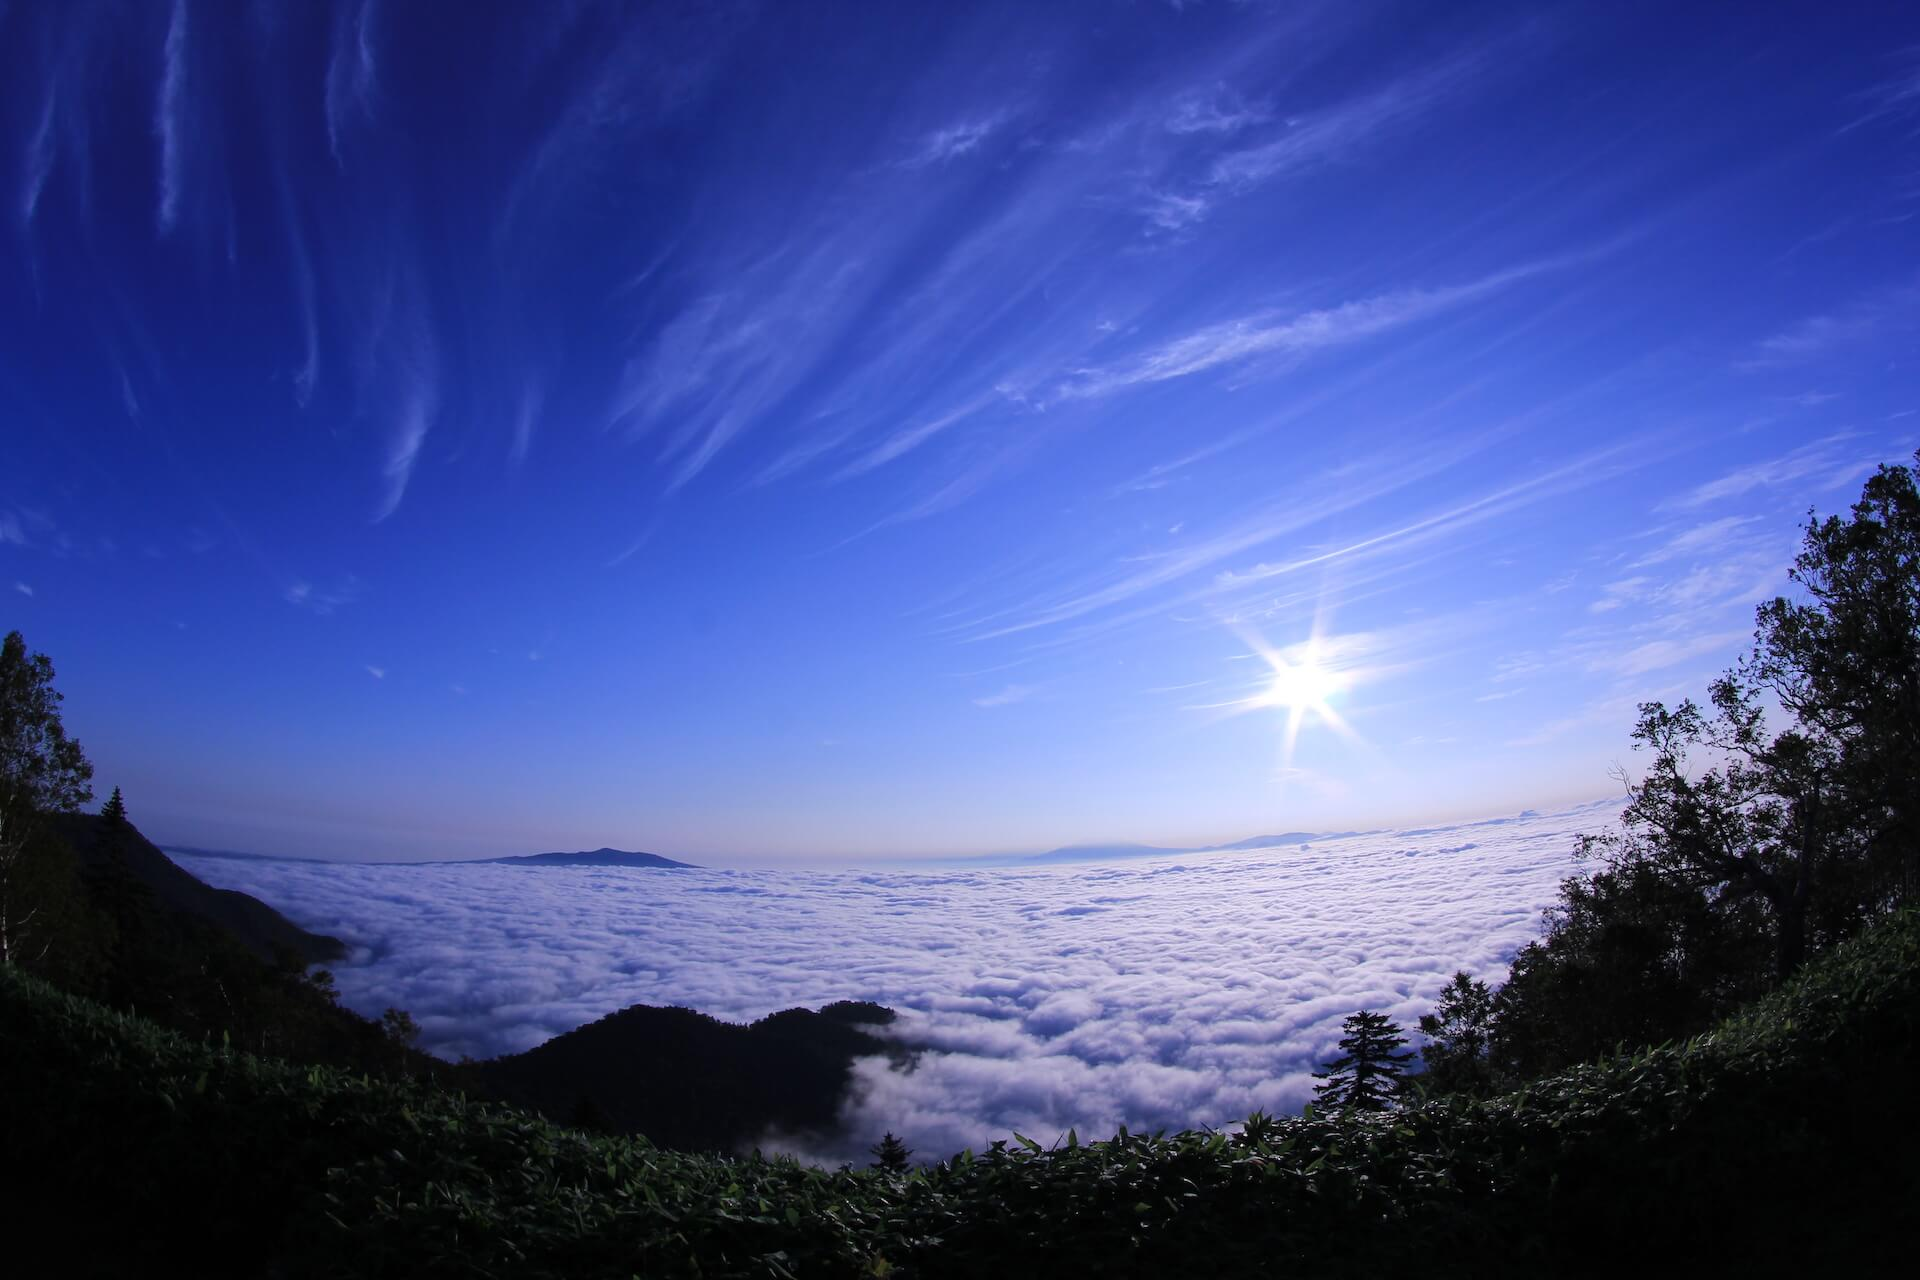 Float Away in Lake Kussharo's Otherworldly Sea of Clouds